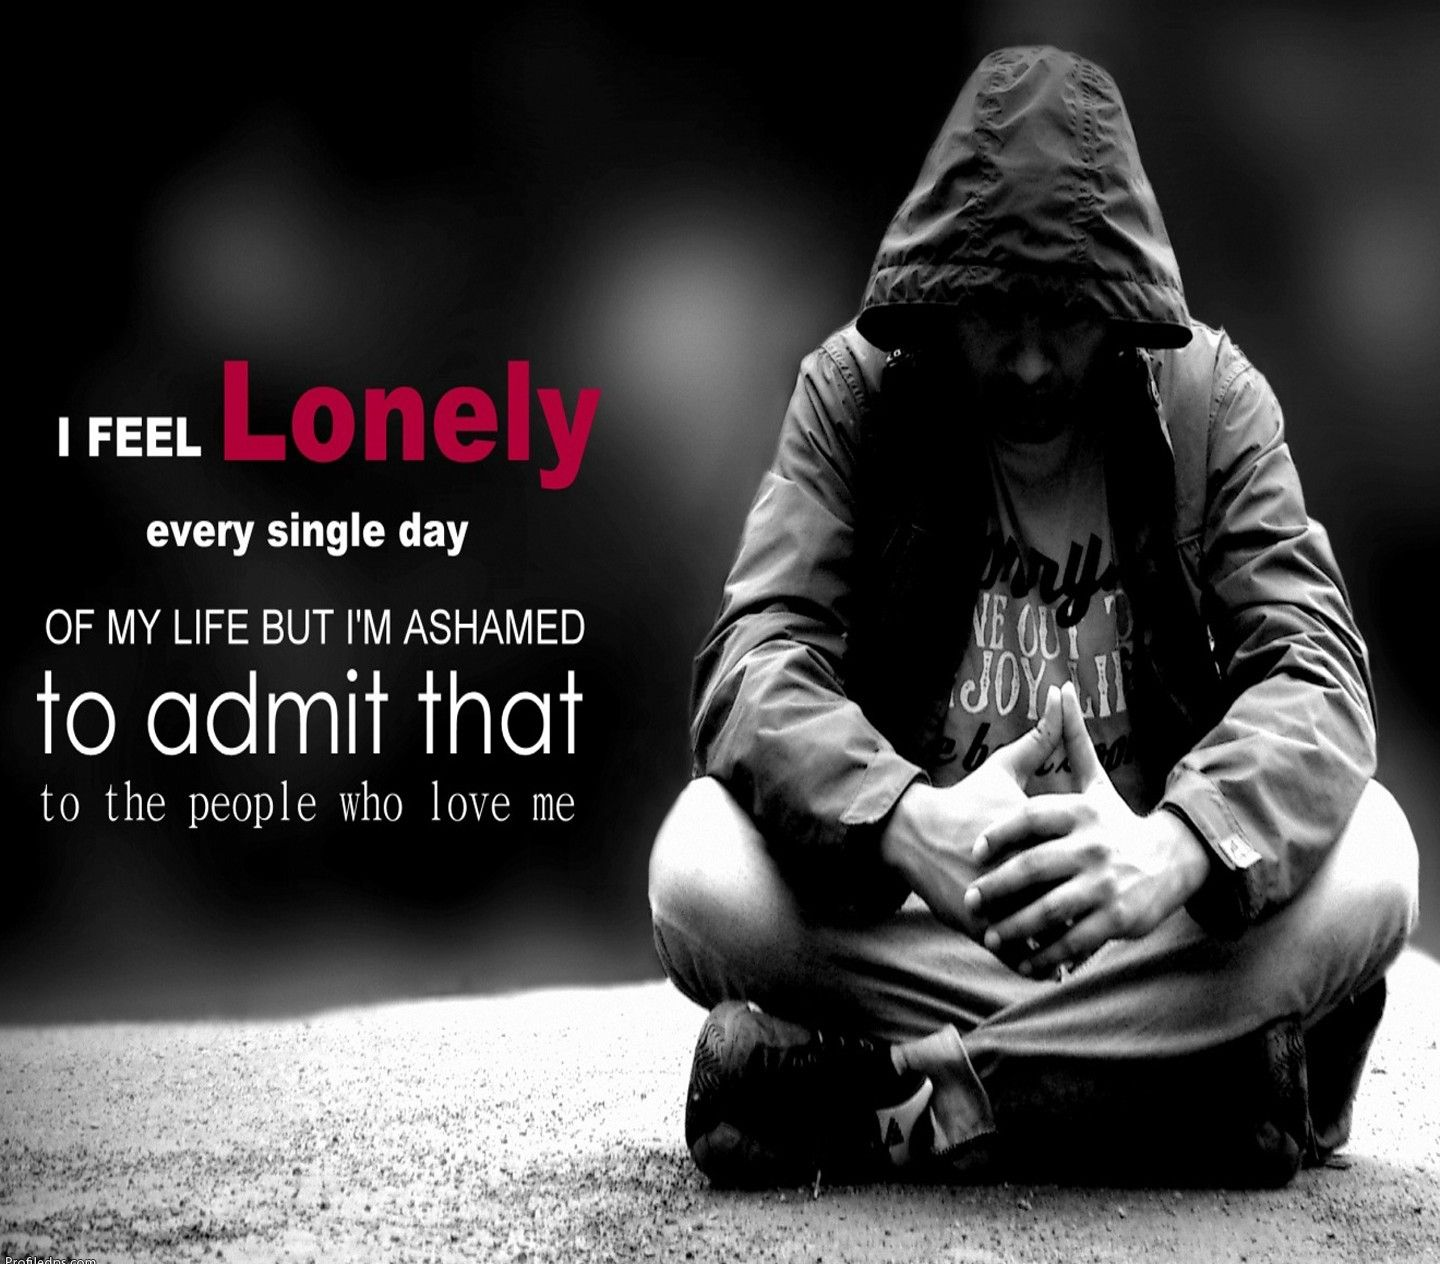 Sad Boy Alone Quotes: Looking For Sad Alone Profile Pictures For Facebook For